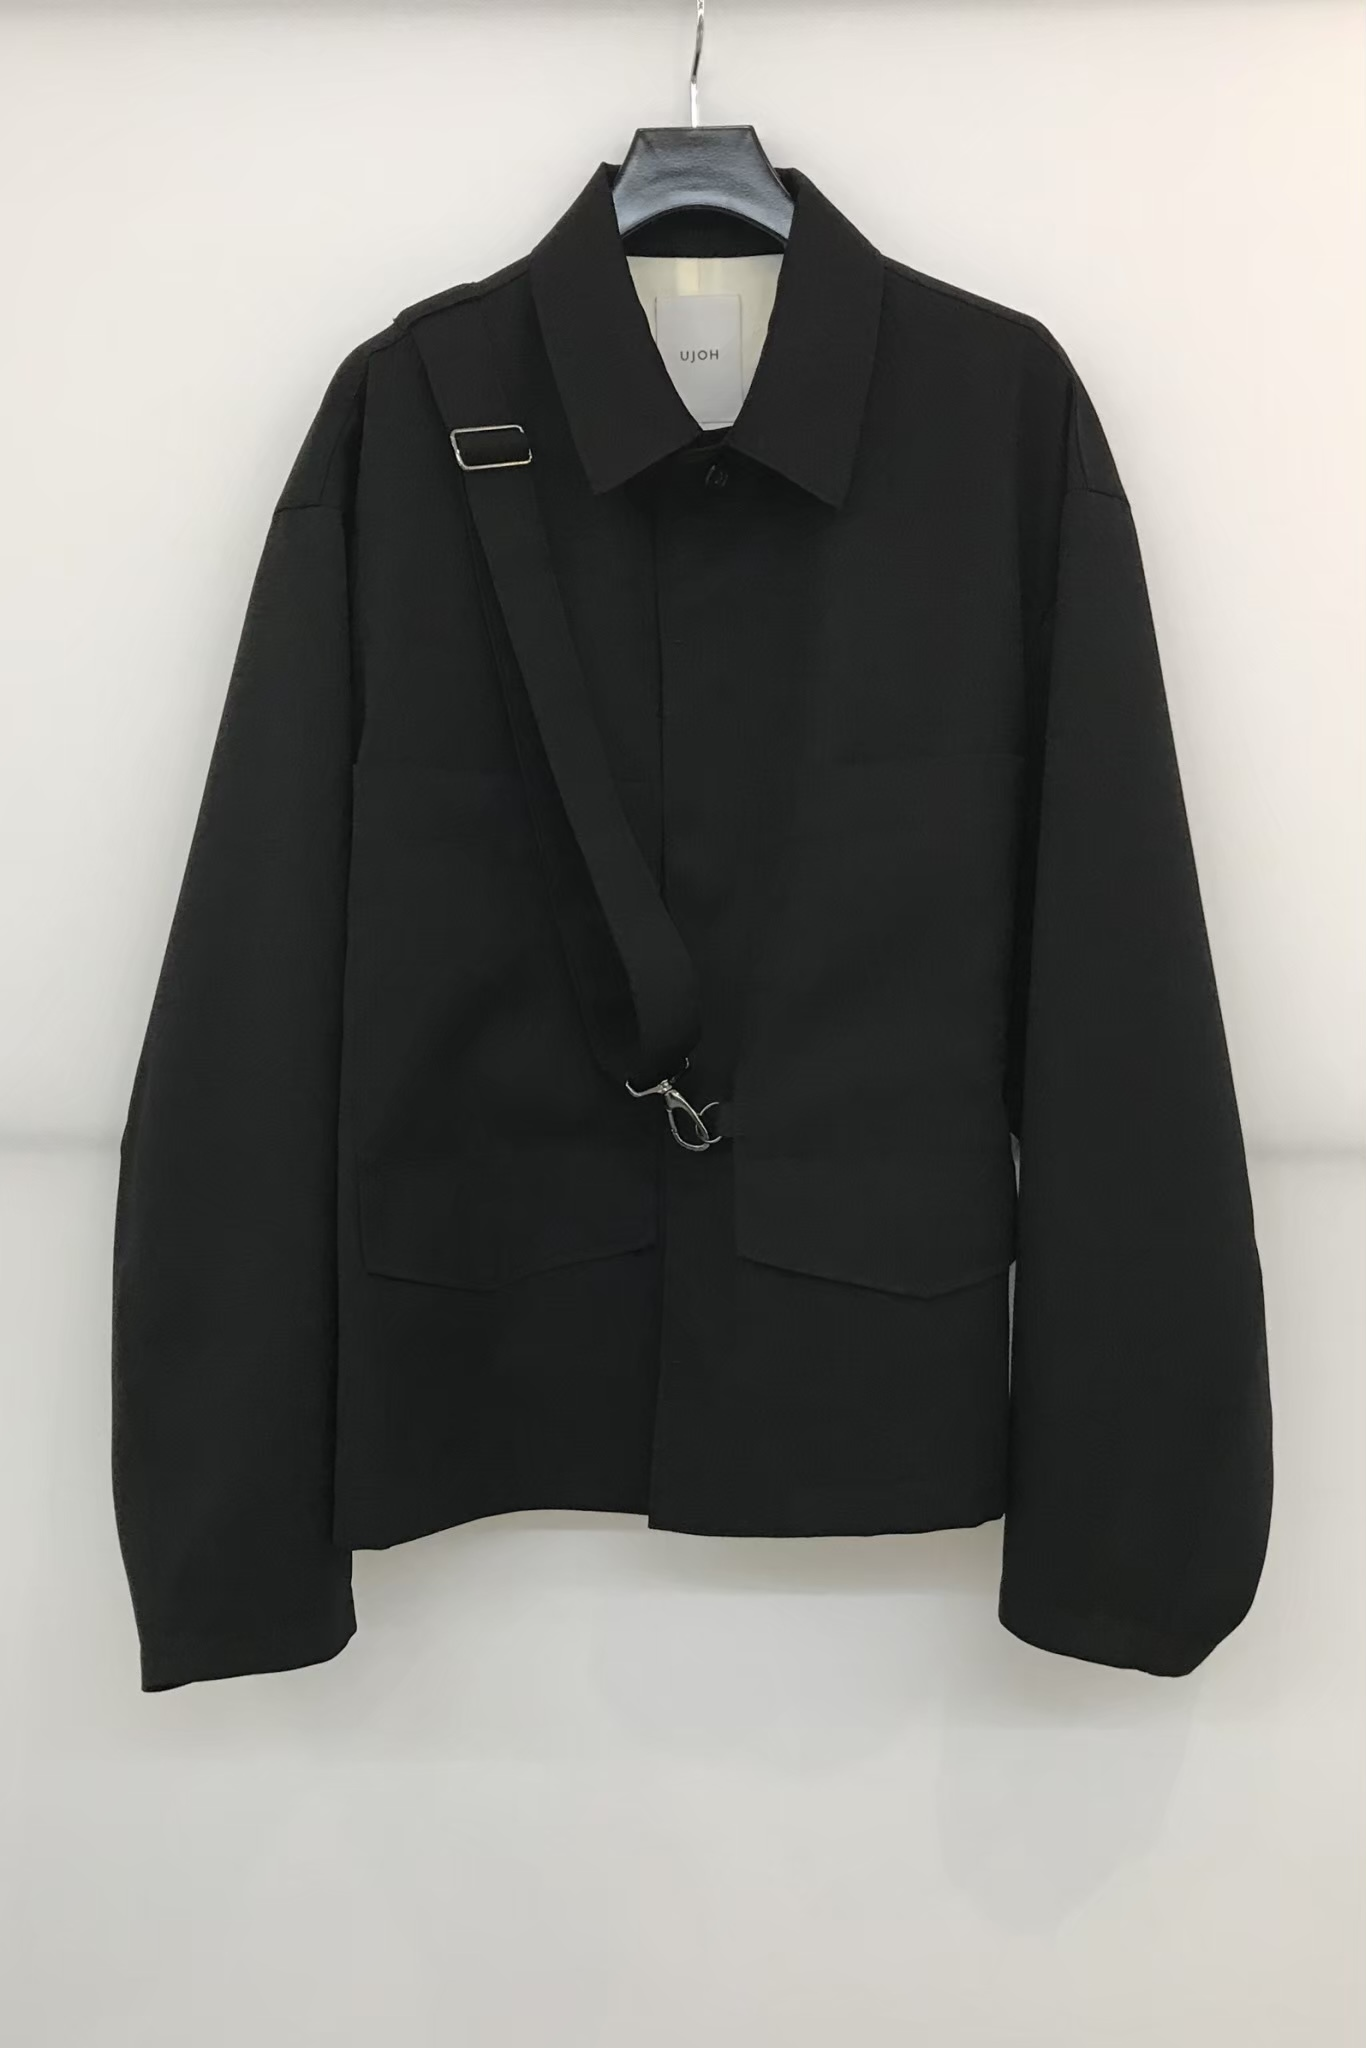 【UJOH】《21SS》M781-Y50-001